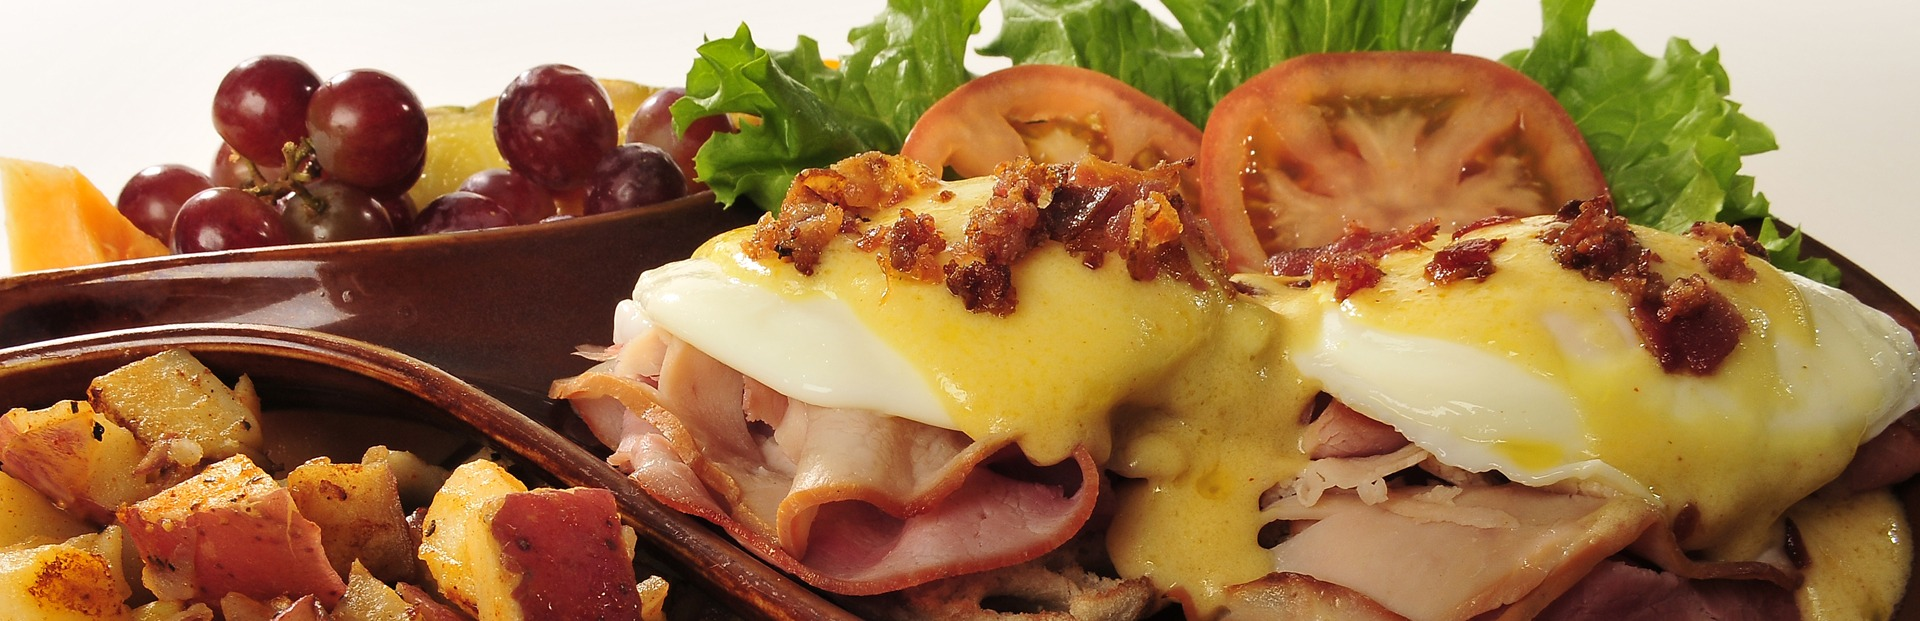 Best Eggs Benedicts in Raleigh